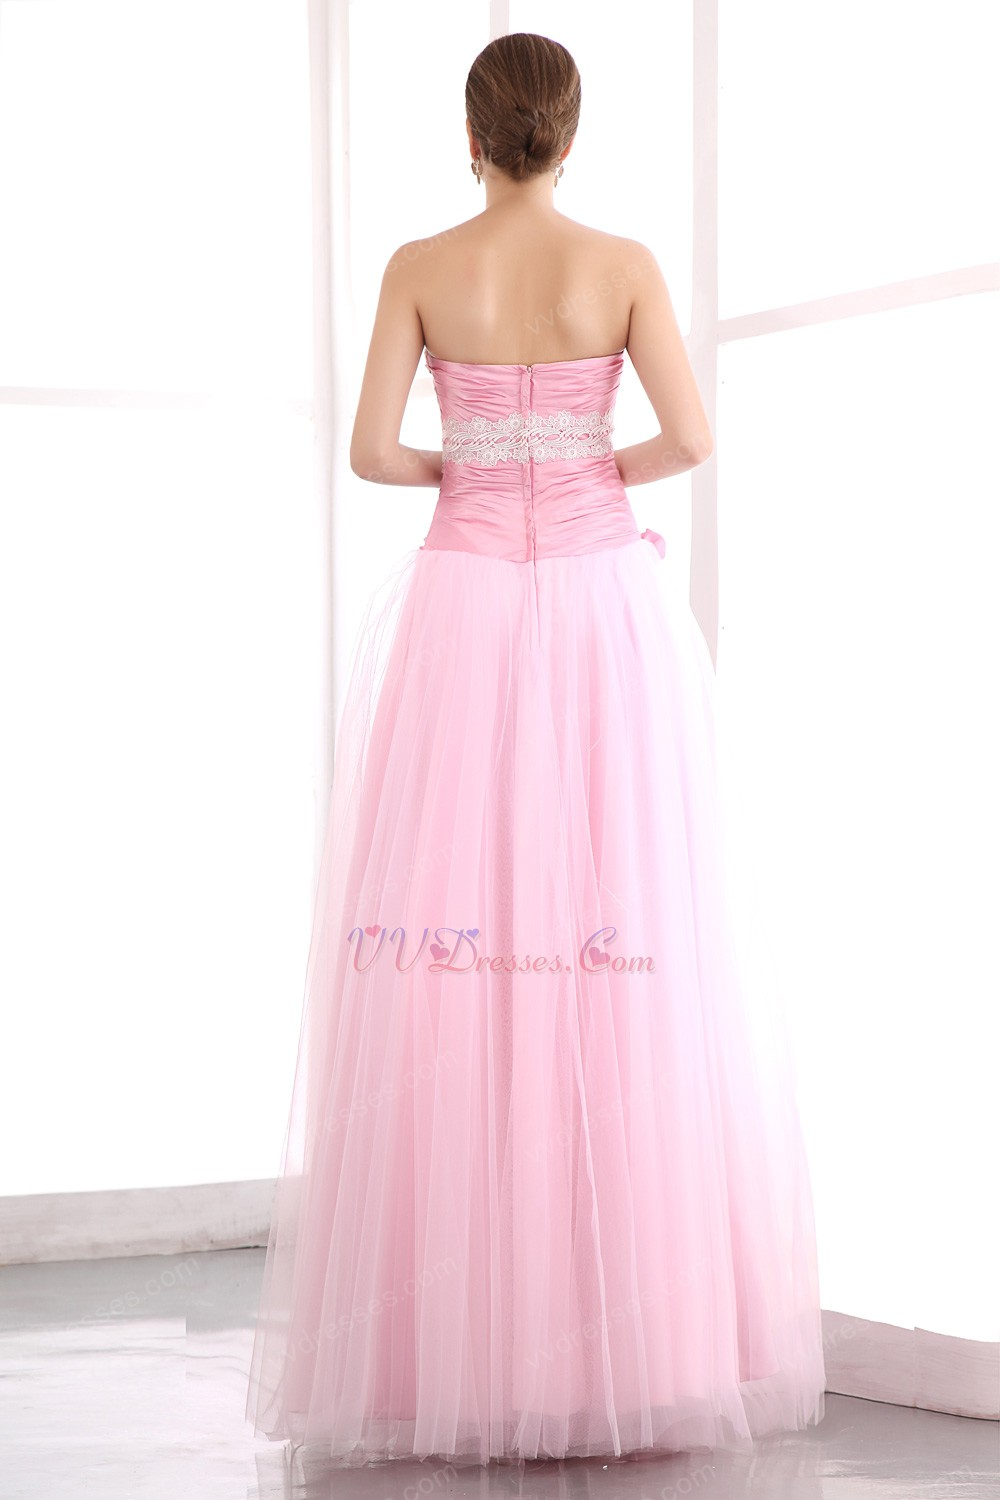 Pretty Sweetheart Pink Net Skirt Prom Dress With Flowers ...